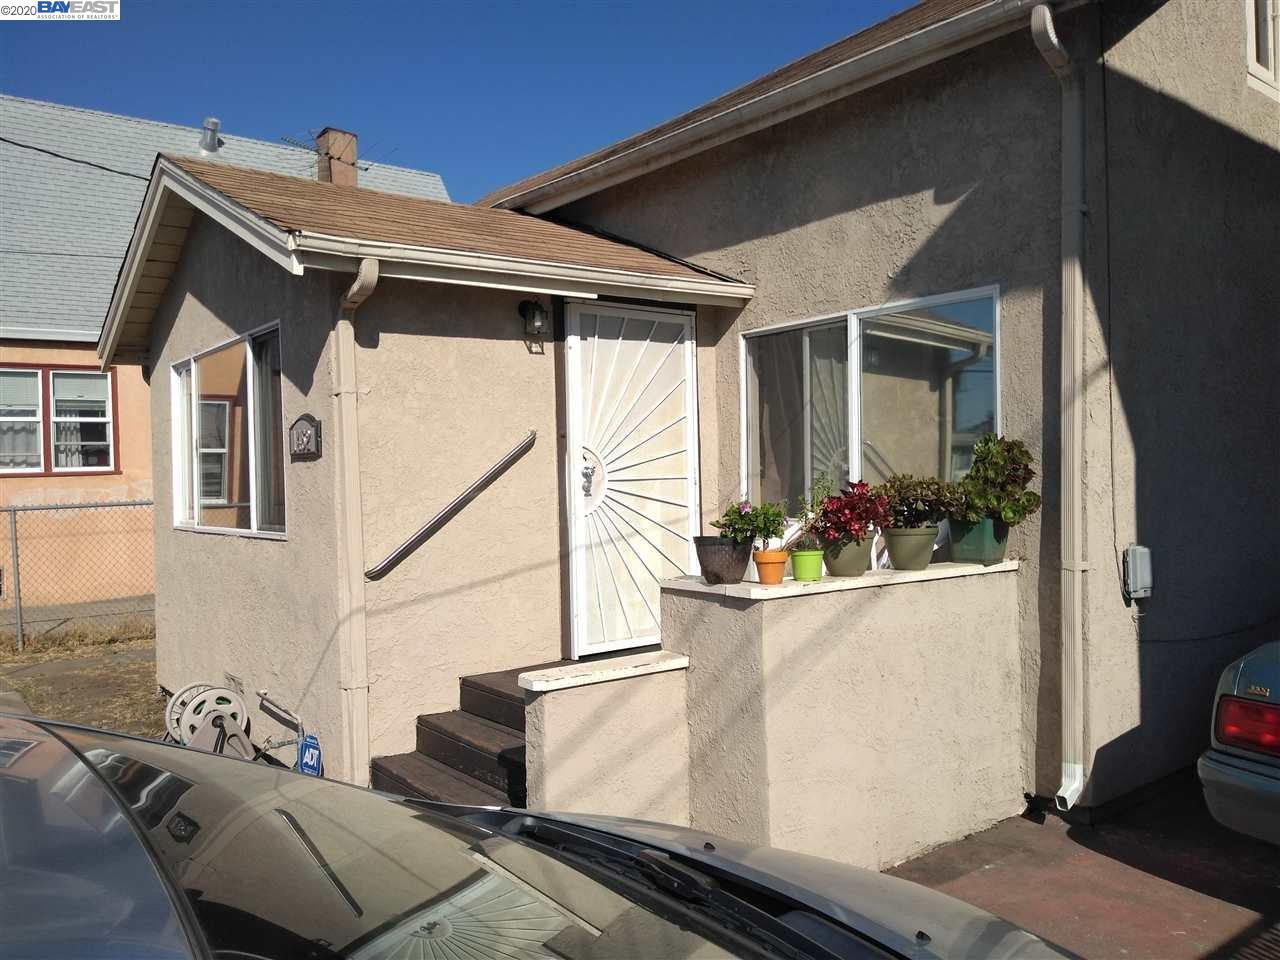 Photo for 1452 88Th Ave, OAKLAND, CA 94621 (MLS # 40914999)